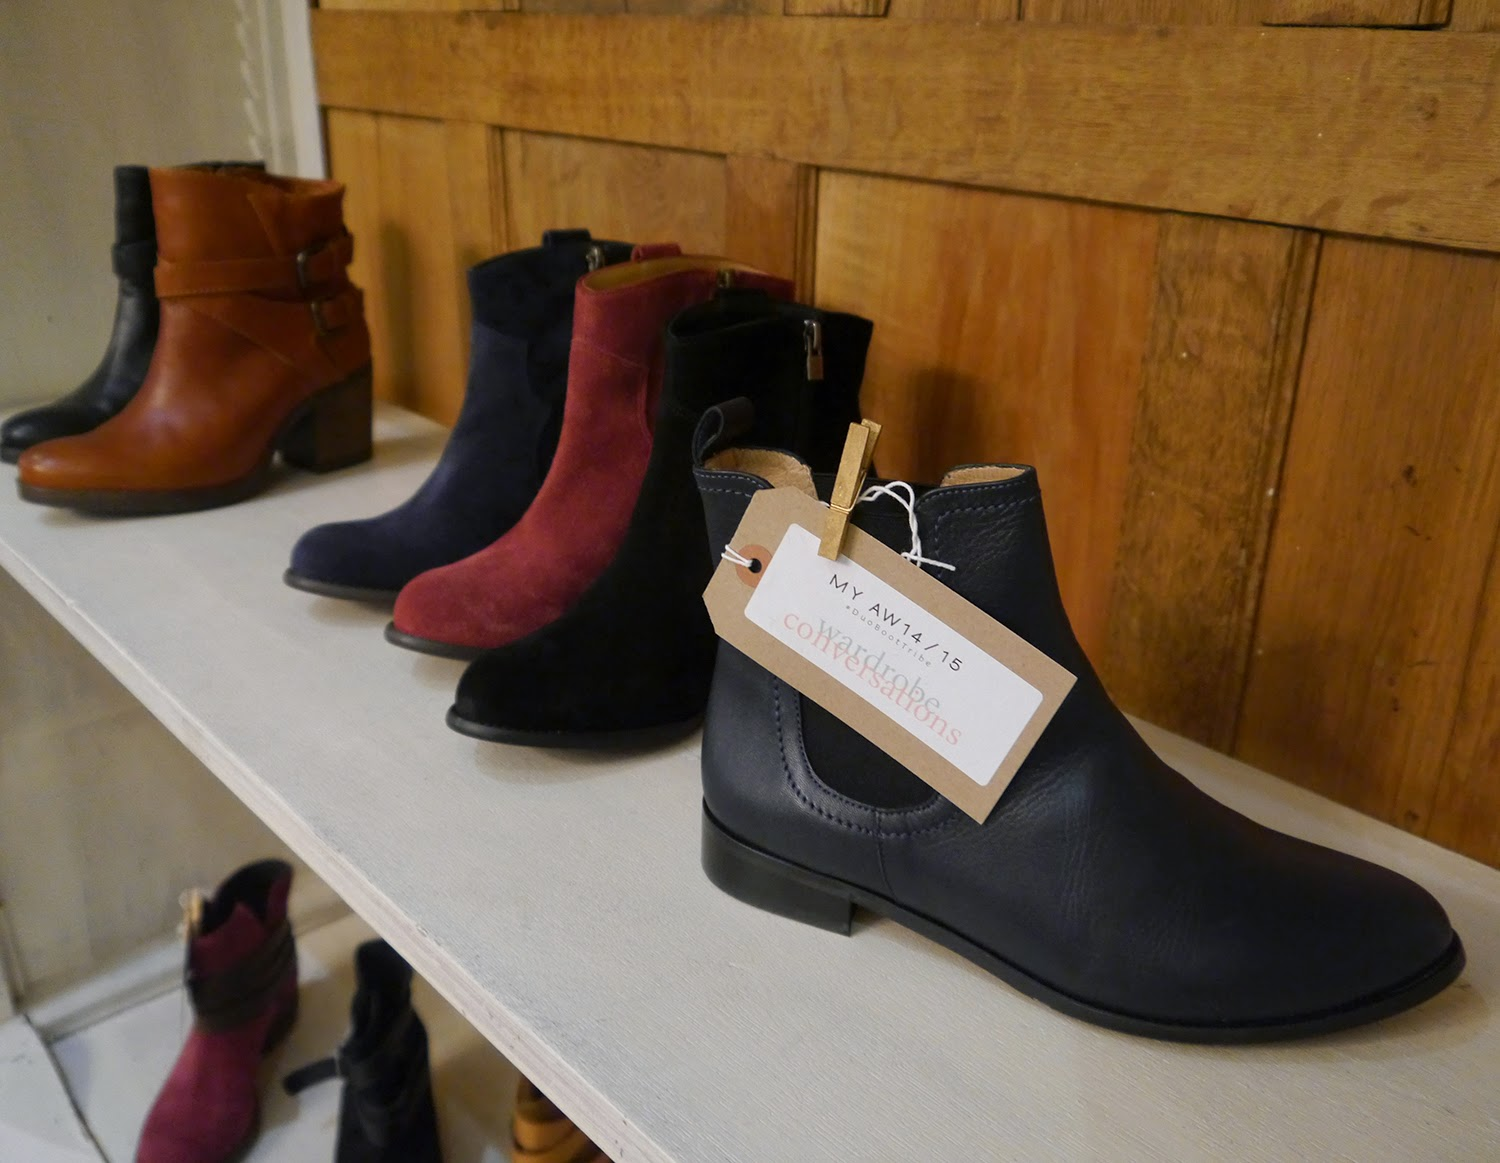 DUO, Edinburgh event, Blogger event, Scottish bloggers, blogging duo, ankle boots, autumn style, boots, Wardrobe Conversations, #boottribe, #DUOBootTribe, Duo Boot Tribe, Chelsea boots, navy boots, casual footwear